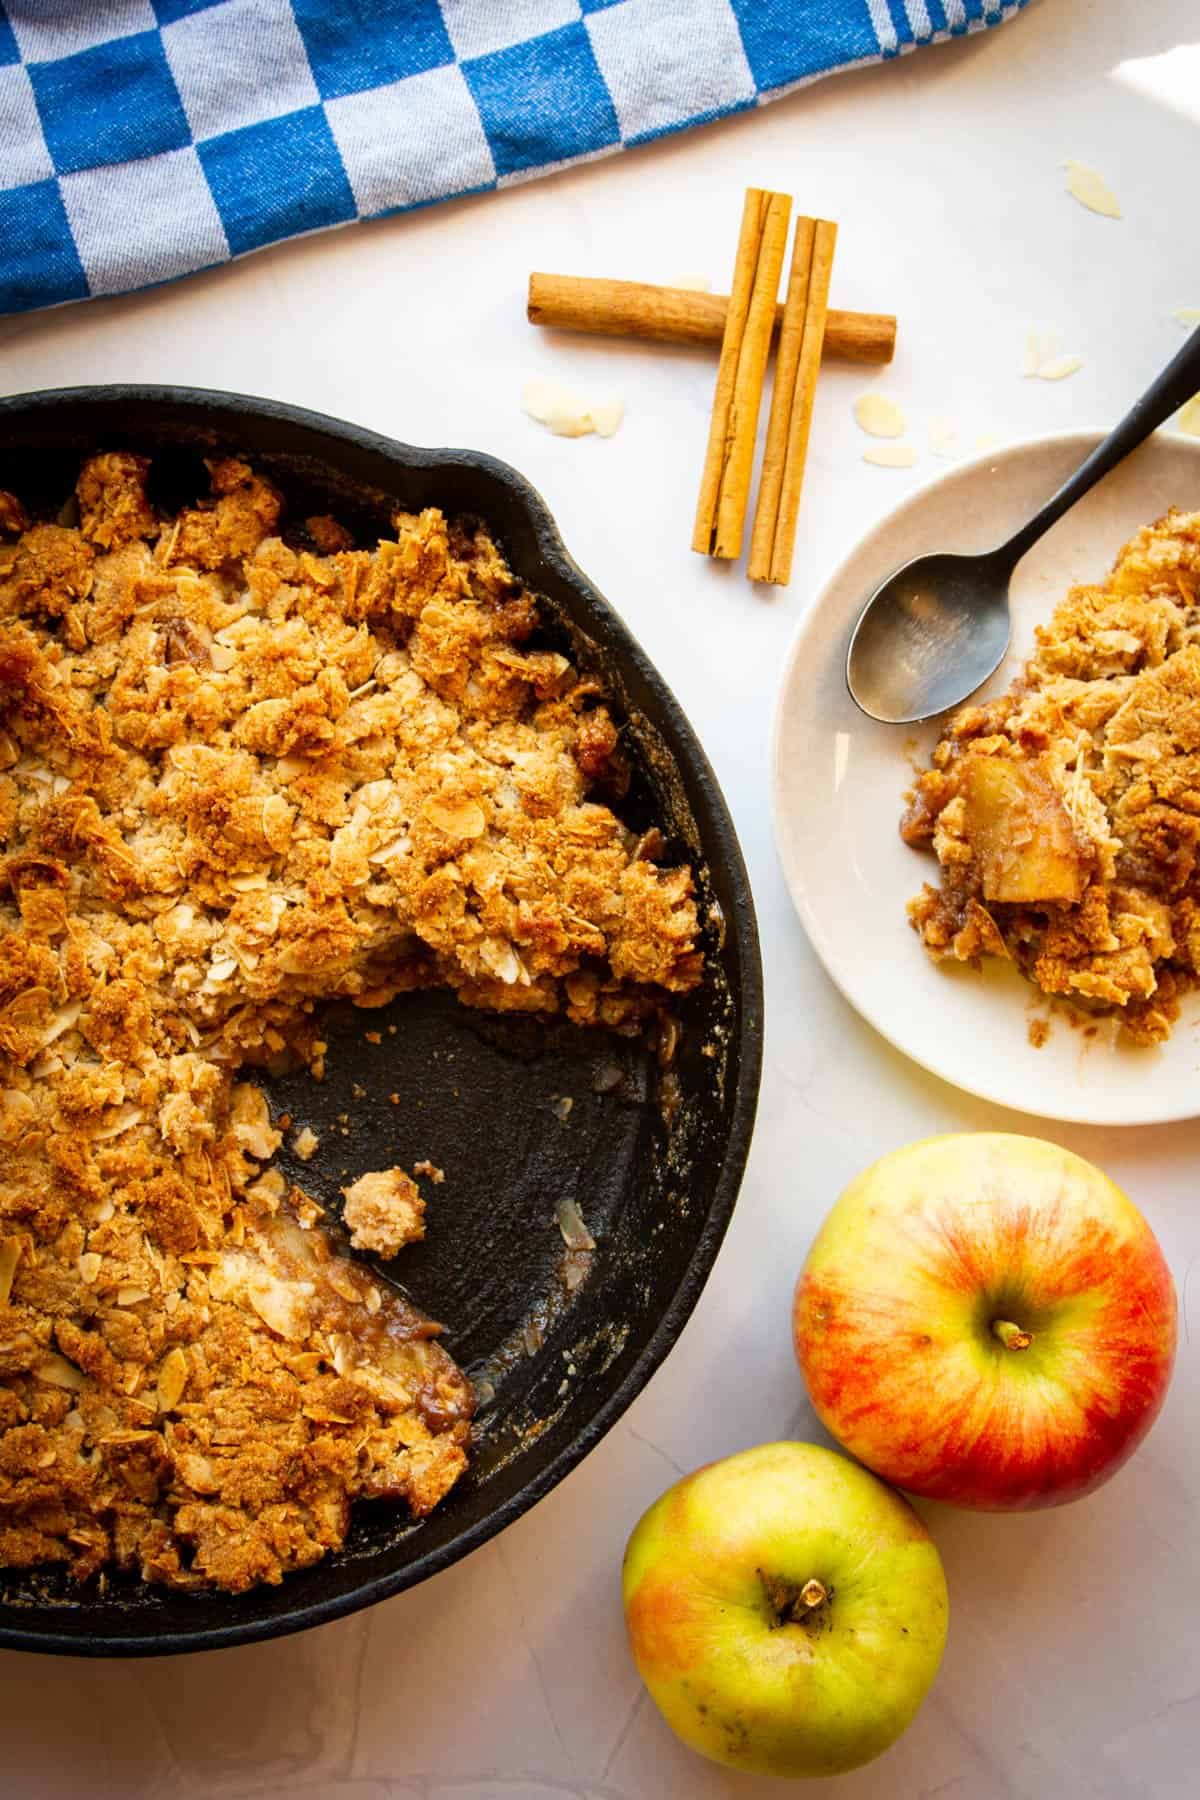 A slice of apple crisp on a plate with the rest of the apple crisp behind